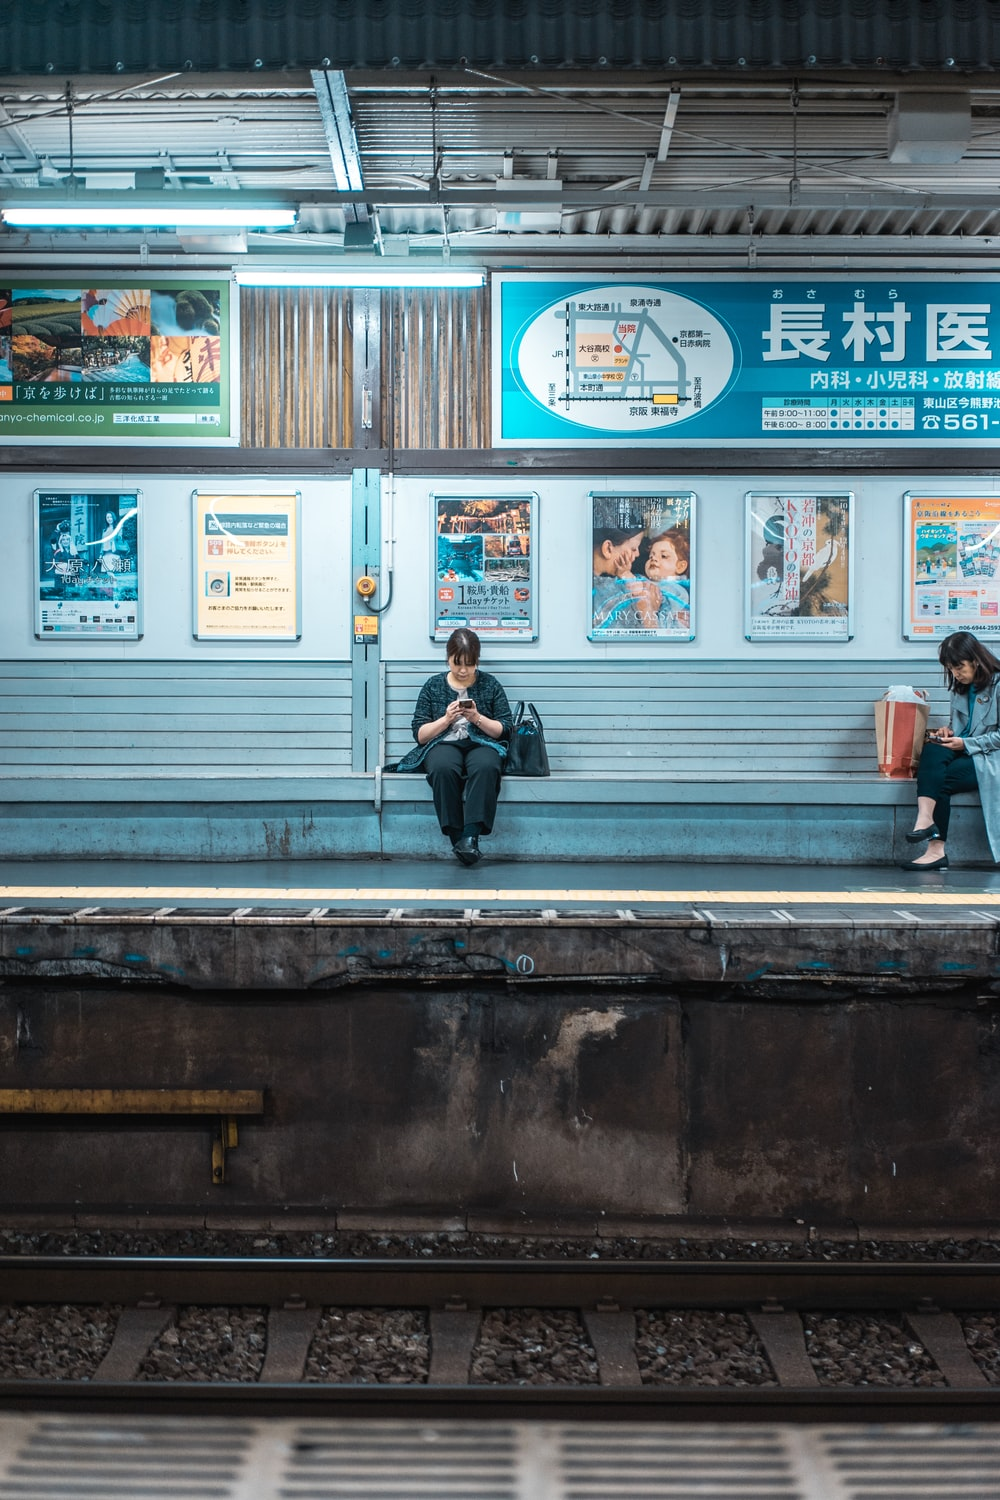 woman sitting on bench while using phone